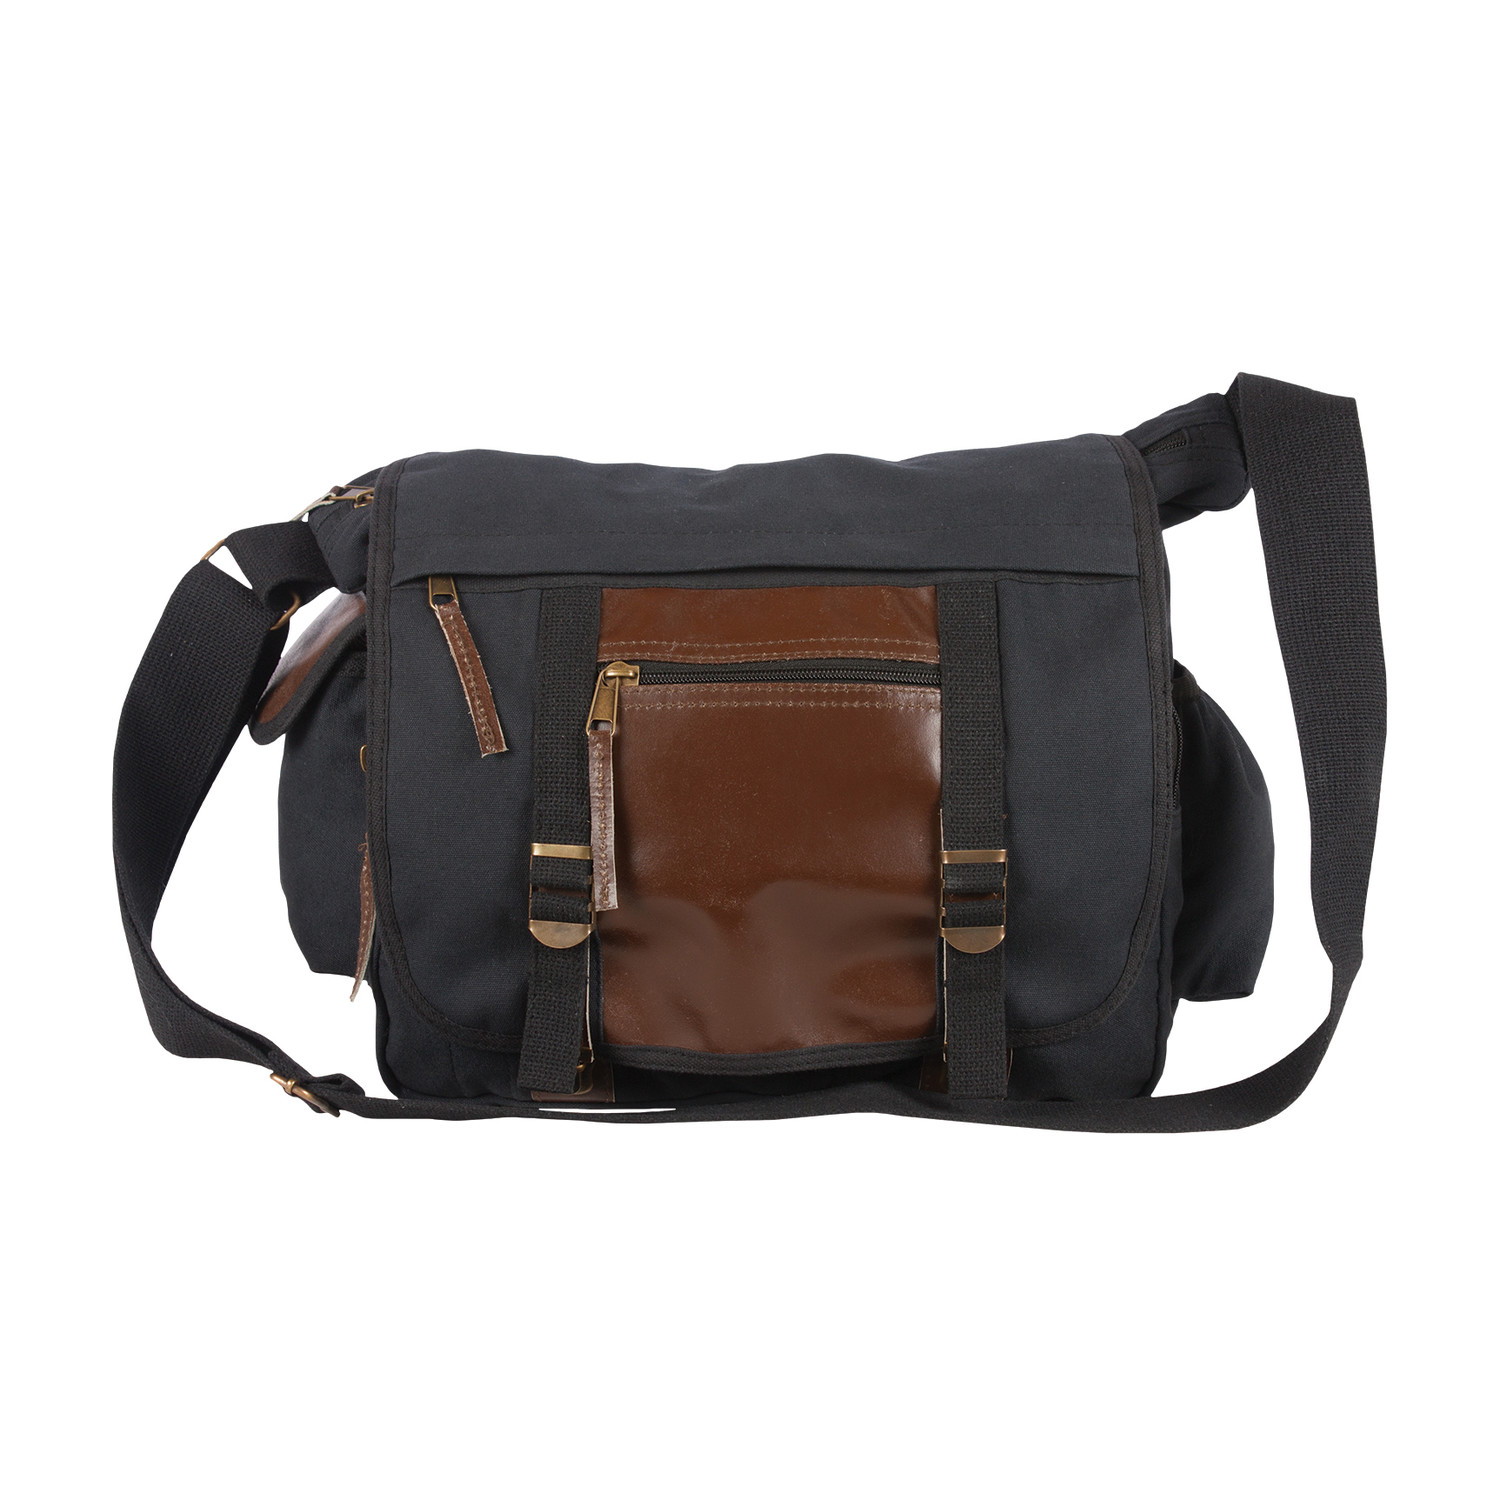 Deluxe Concealed Carry Messenger Bag Black Fox Outdoor